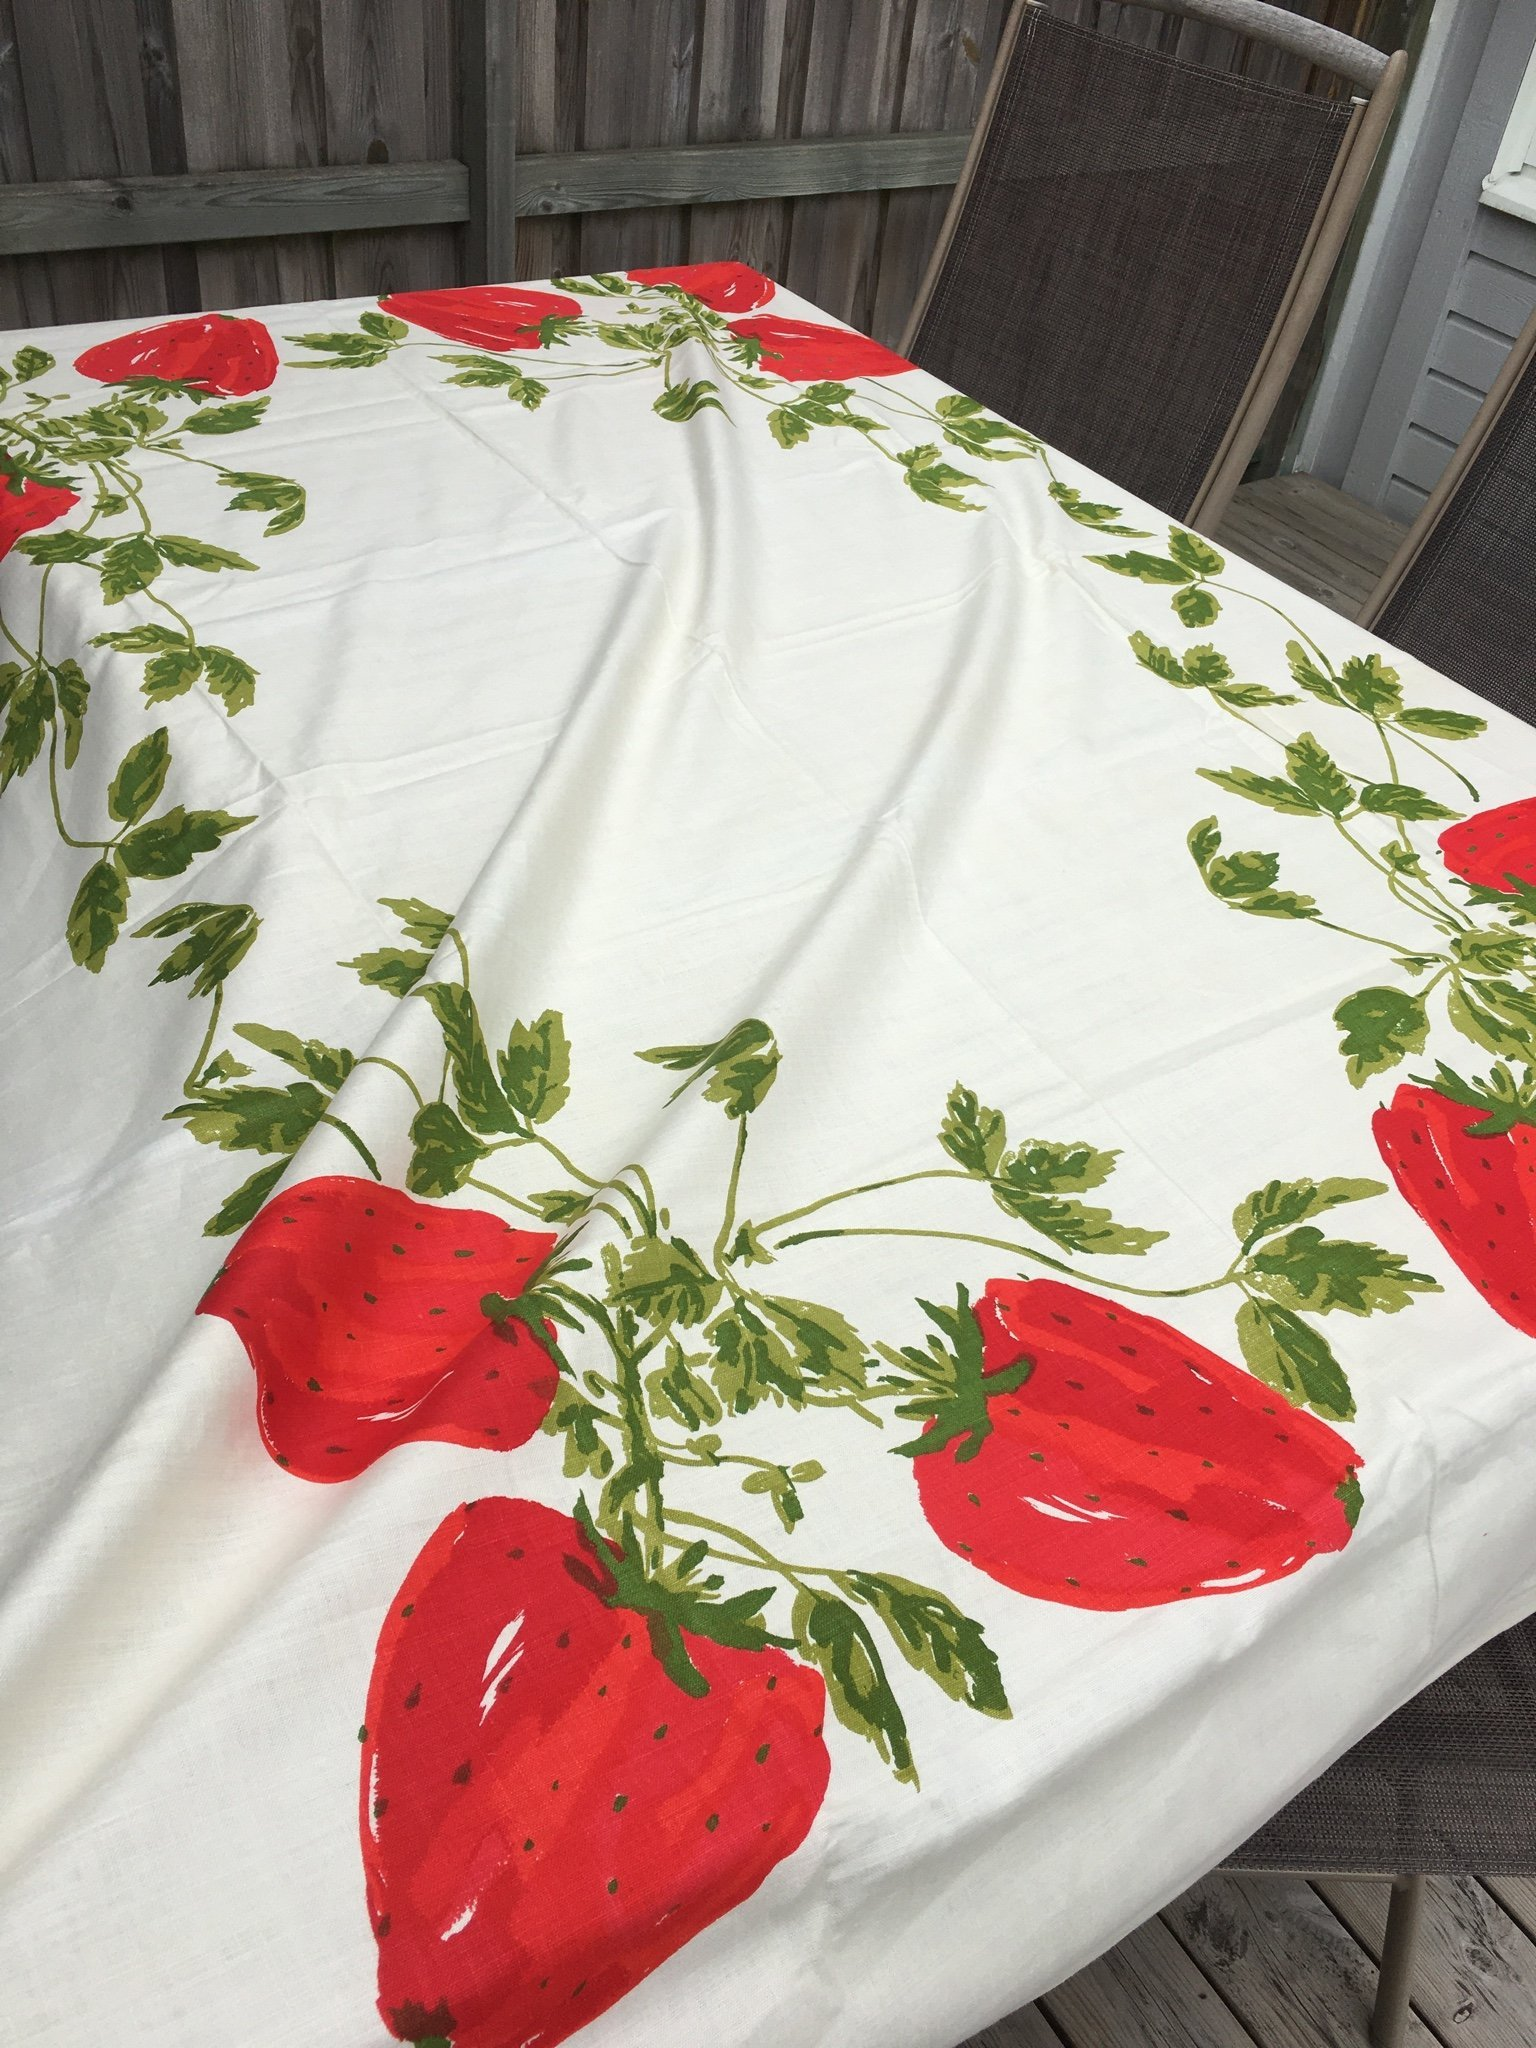 Vera Neumann linne retro vintage duk tyg jordgubbar tablecloth strawberries